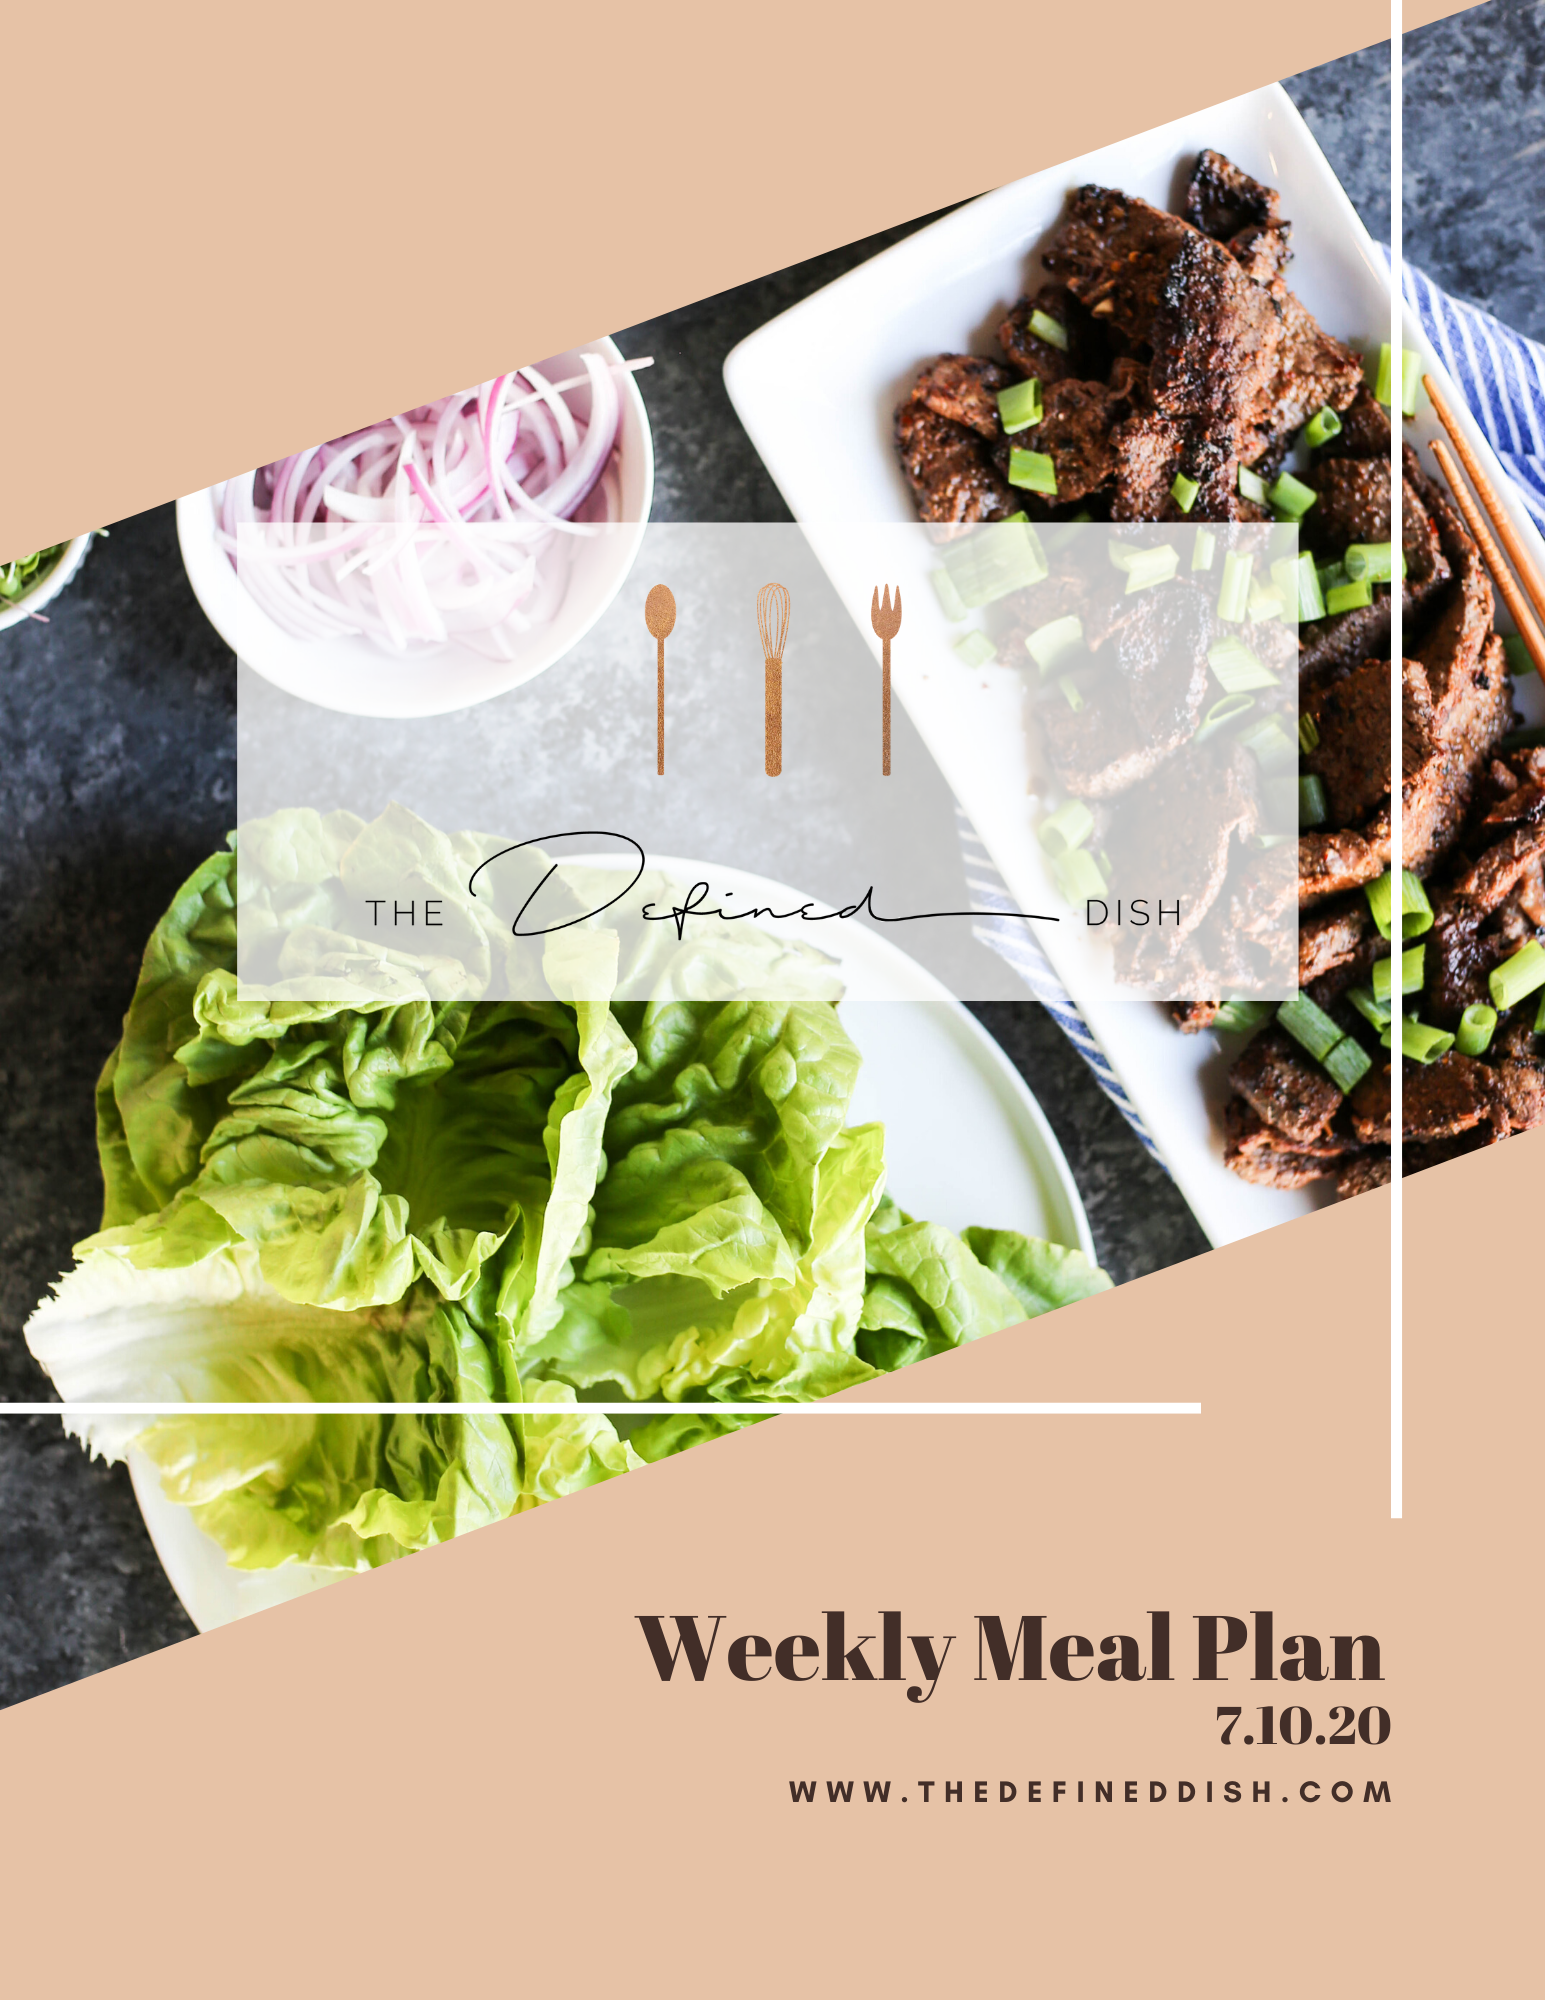 Weekly Meal Plan 7.10.20